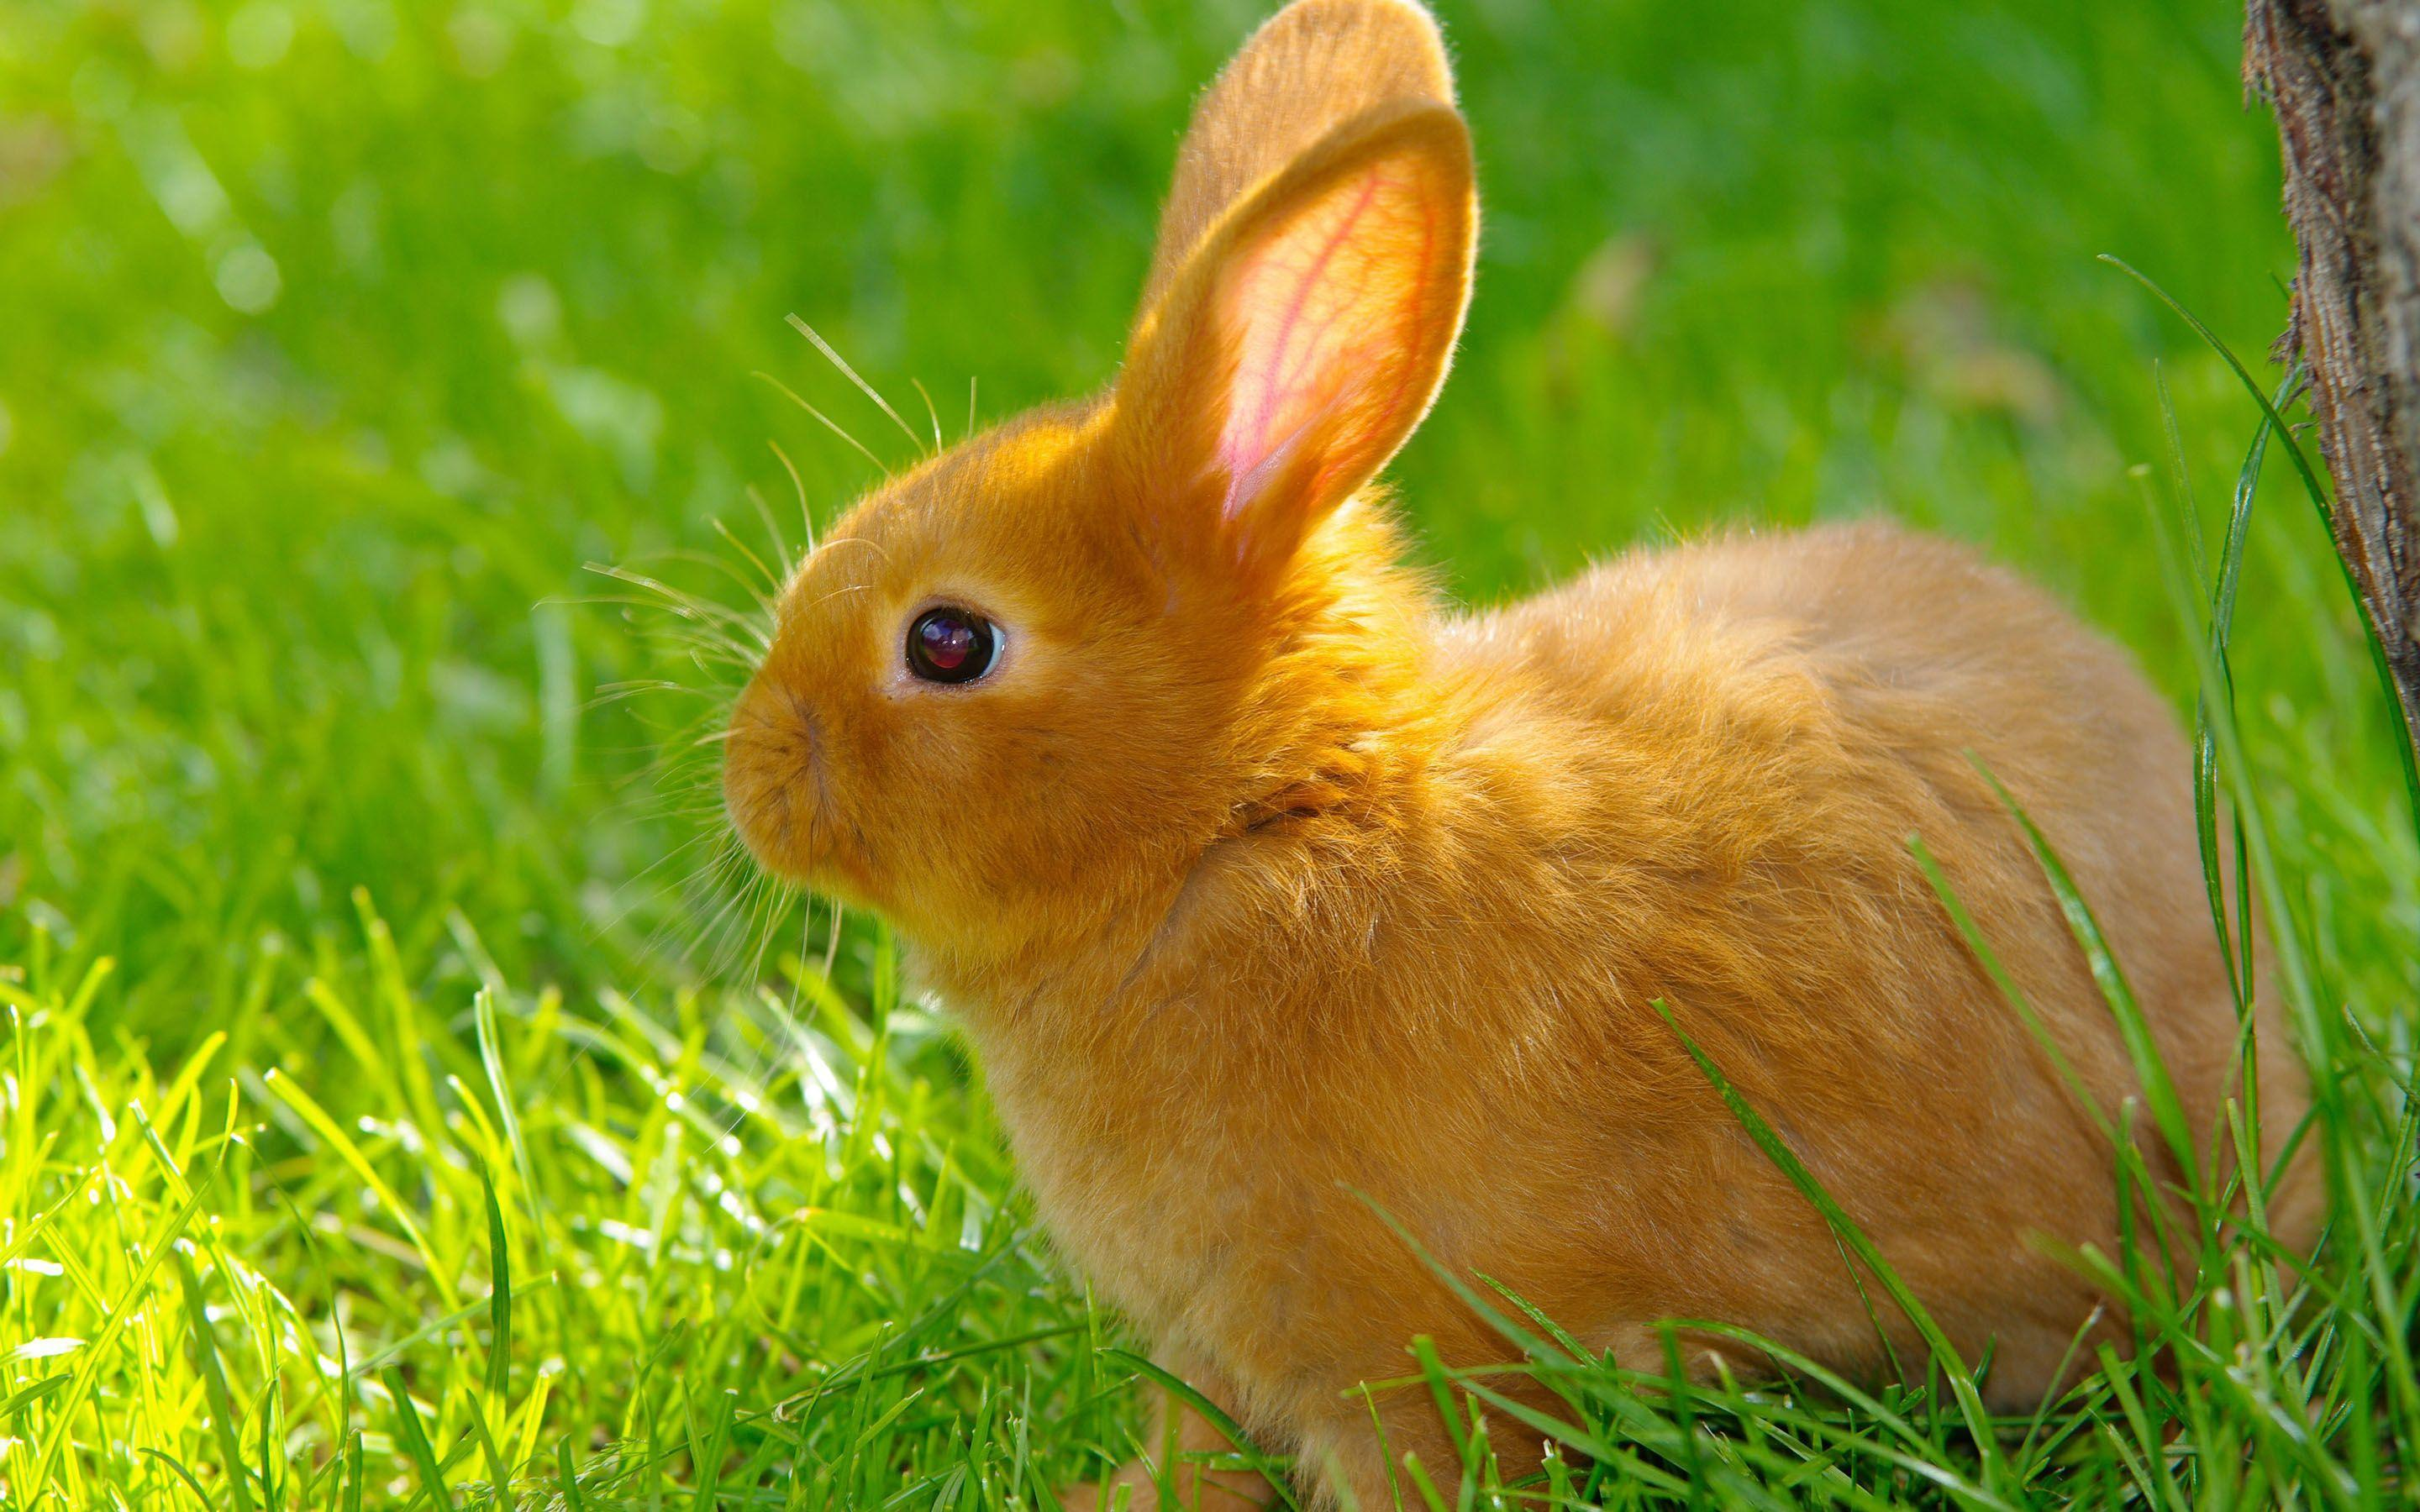 Cute Baby Rabbits Wallpapers Designs 9790